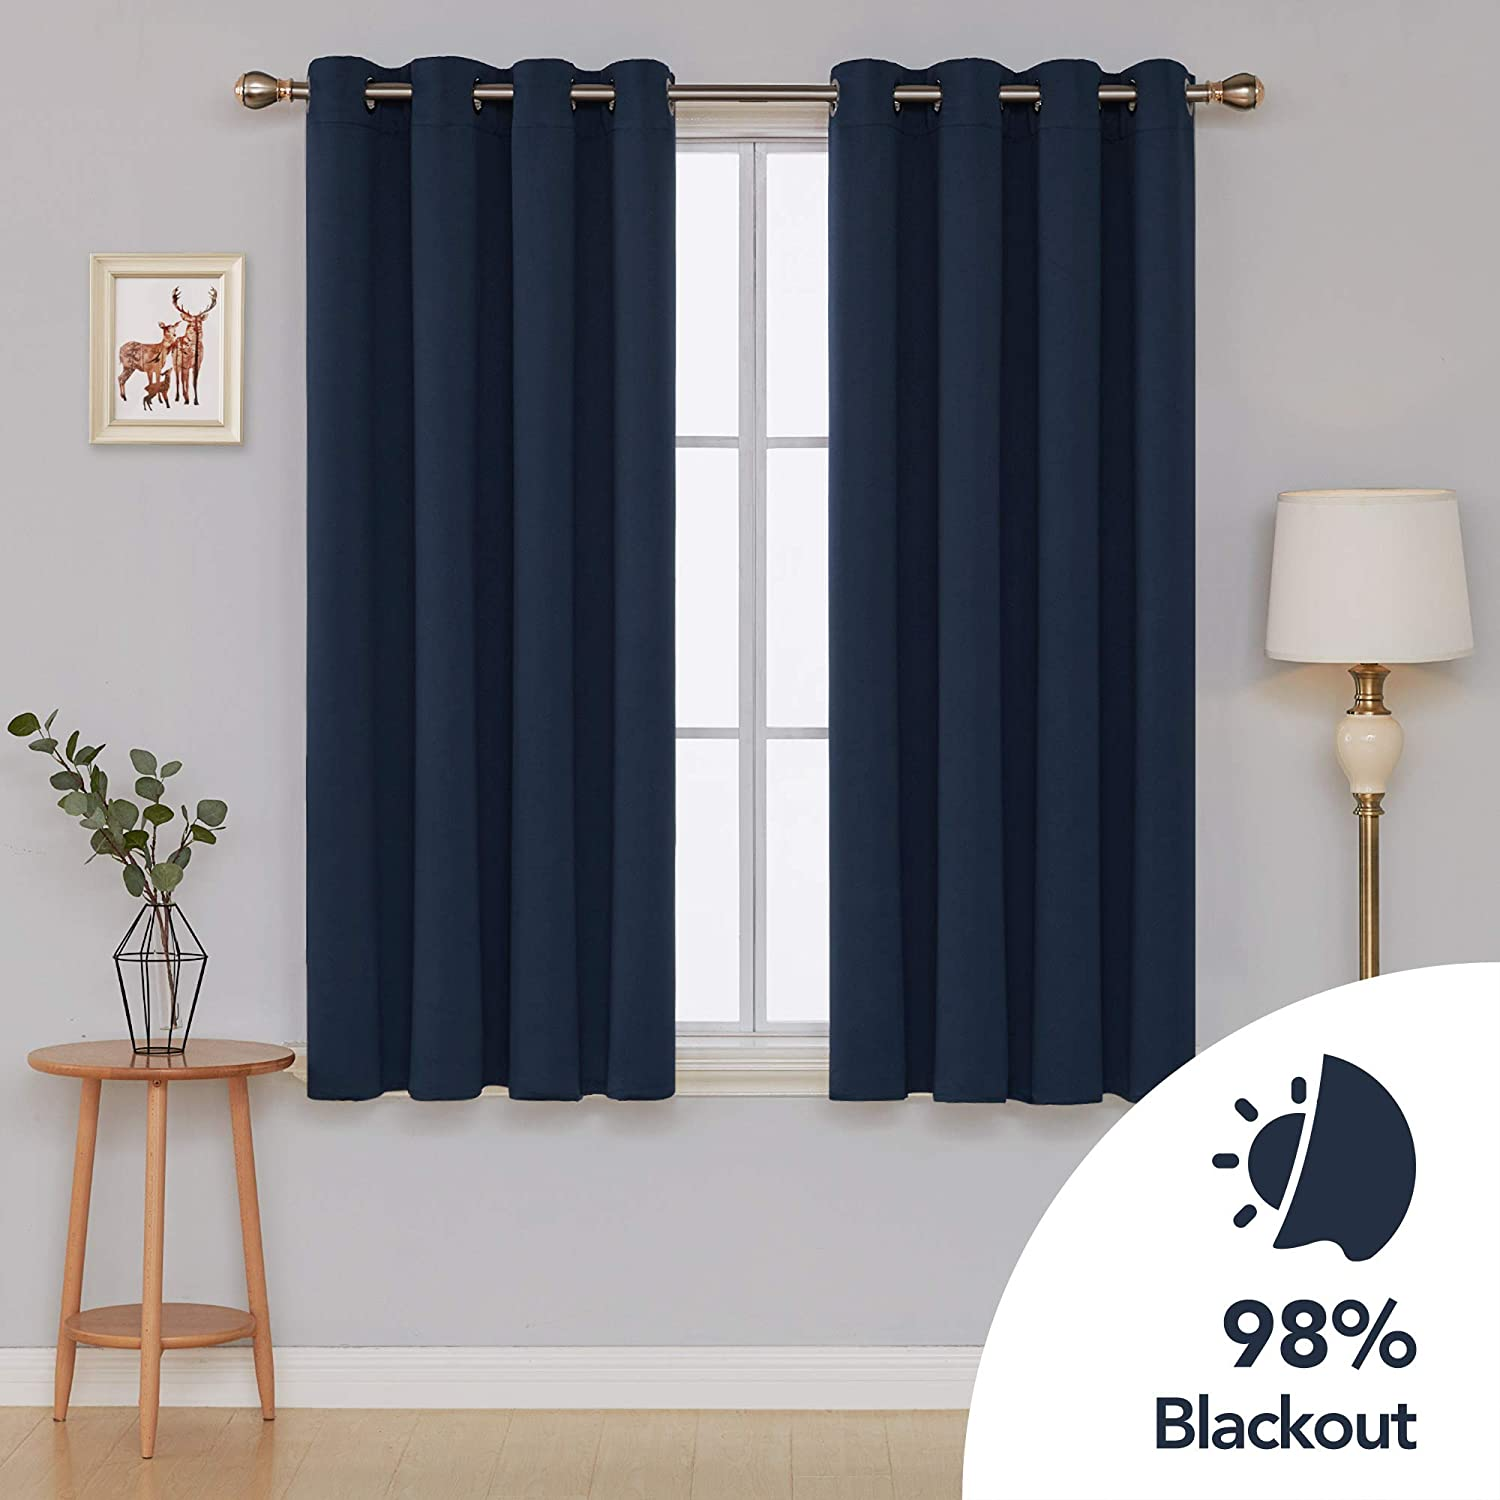 Deconovo Blackout Curtains Grommet Curtains Thermal Insulated Blackout Curtain Room Darkening Curtains for Bedroom 52 x 45 Inch Light Grayish White 2 Panels